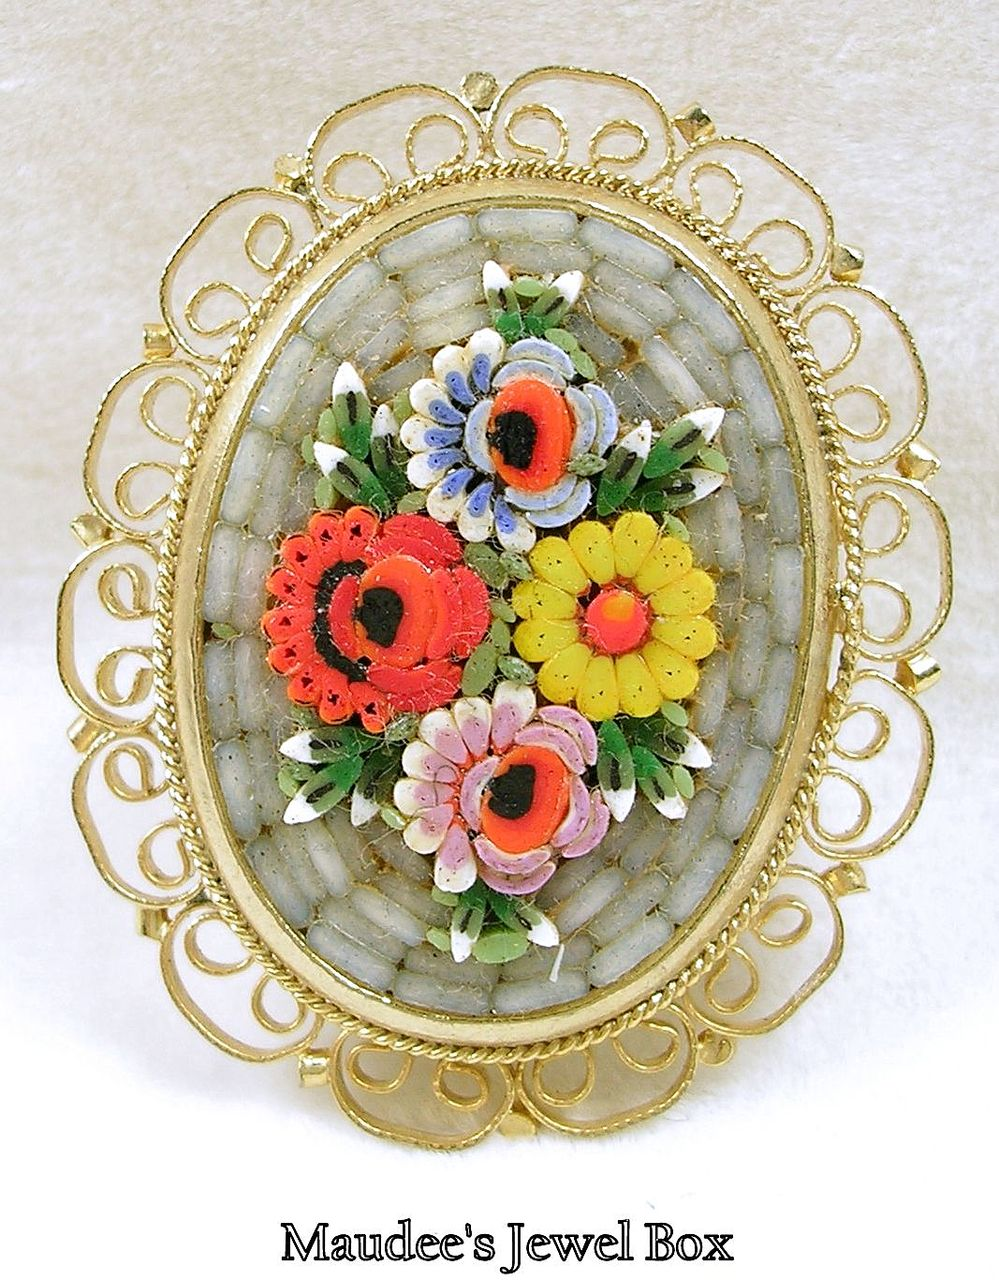 Vintage 3-D Mosaic Brooch Pin with a Filigree Frame